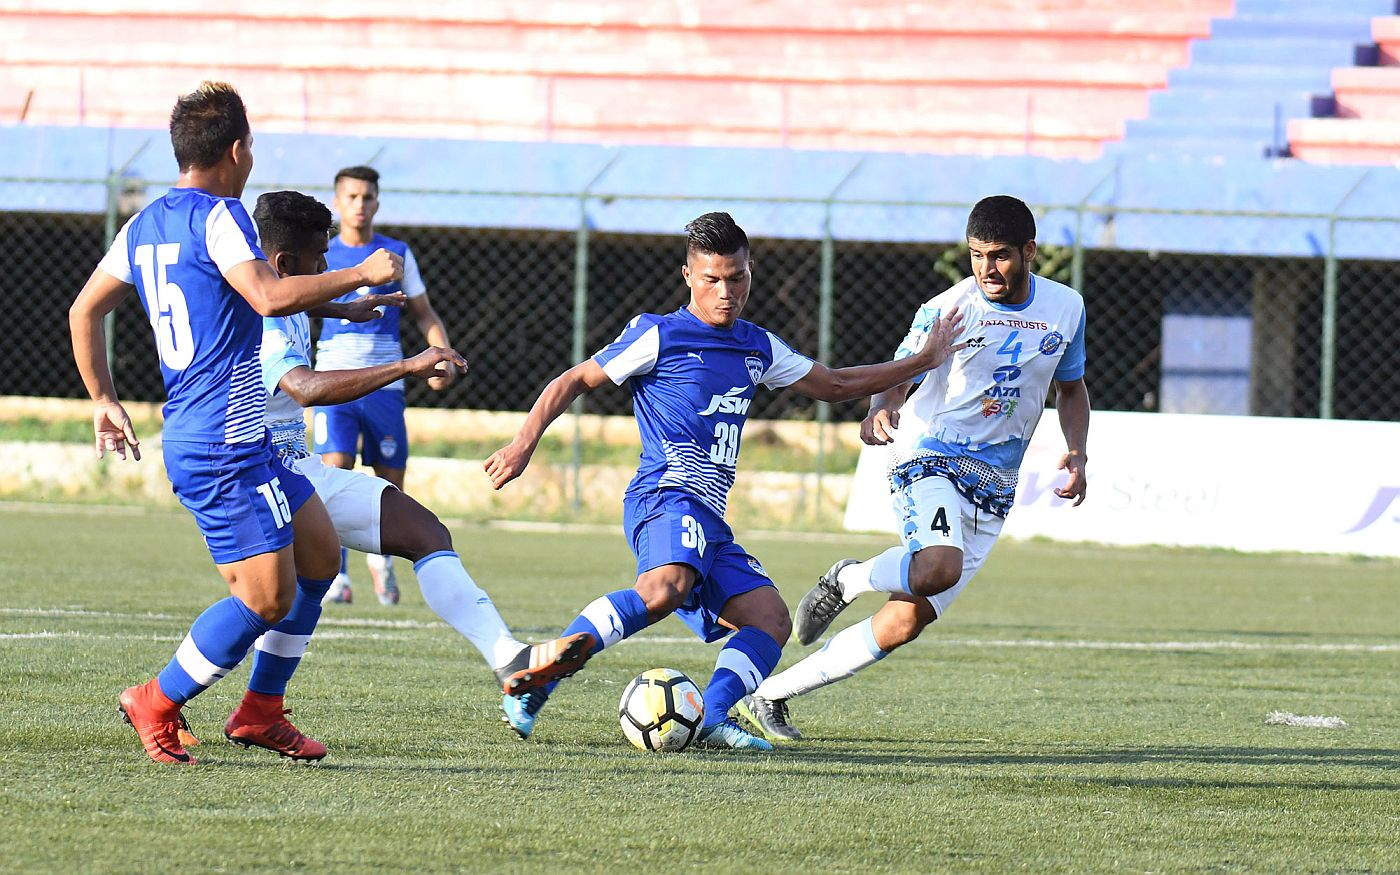 f8fcf1bc1 Second Division League  Bengaluru FC  B  down Jamshedpur FC Reserves 2-0  for second successive win!